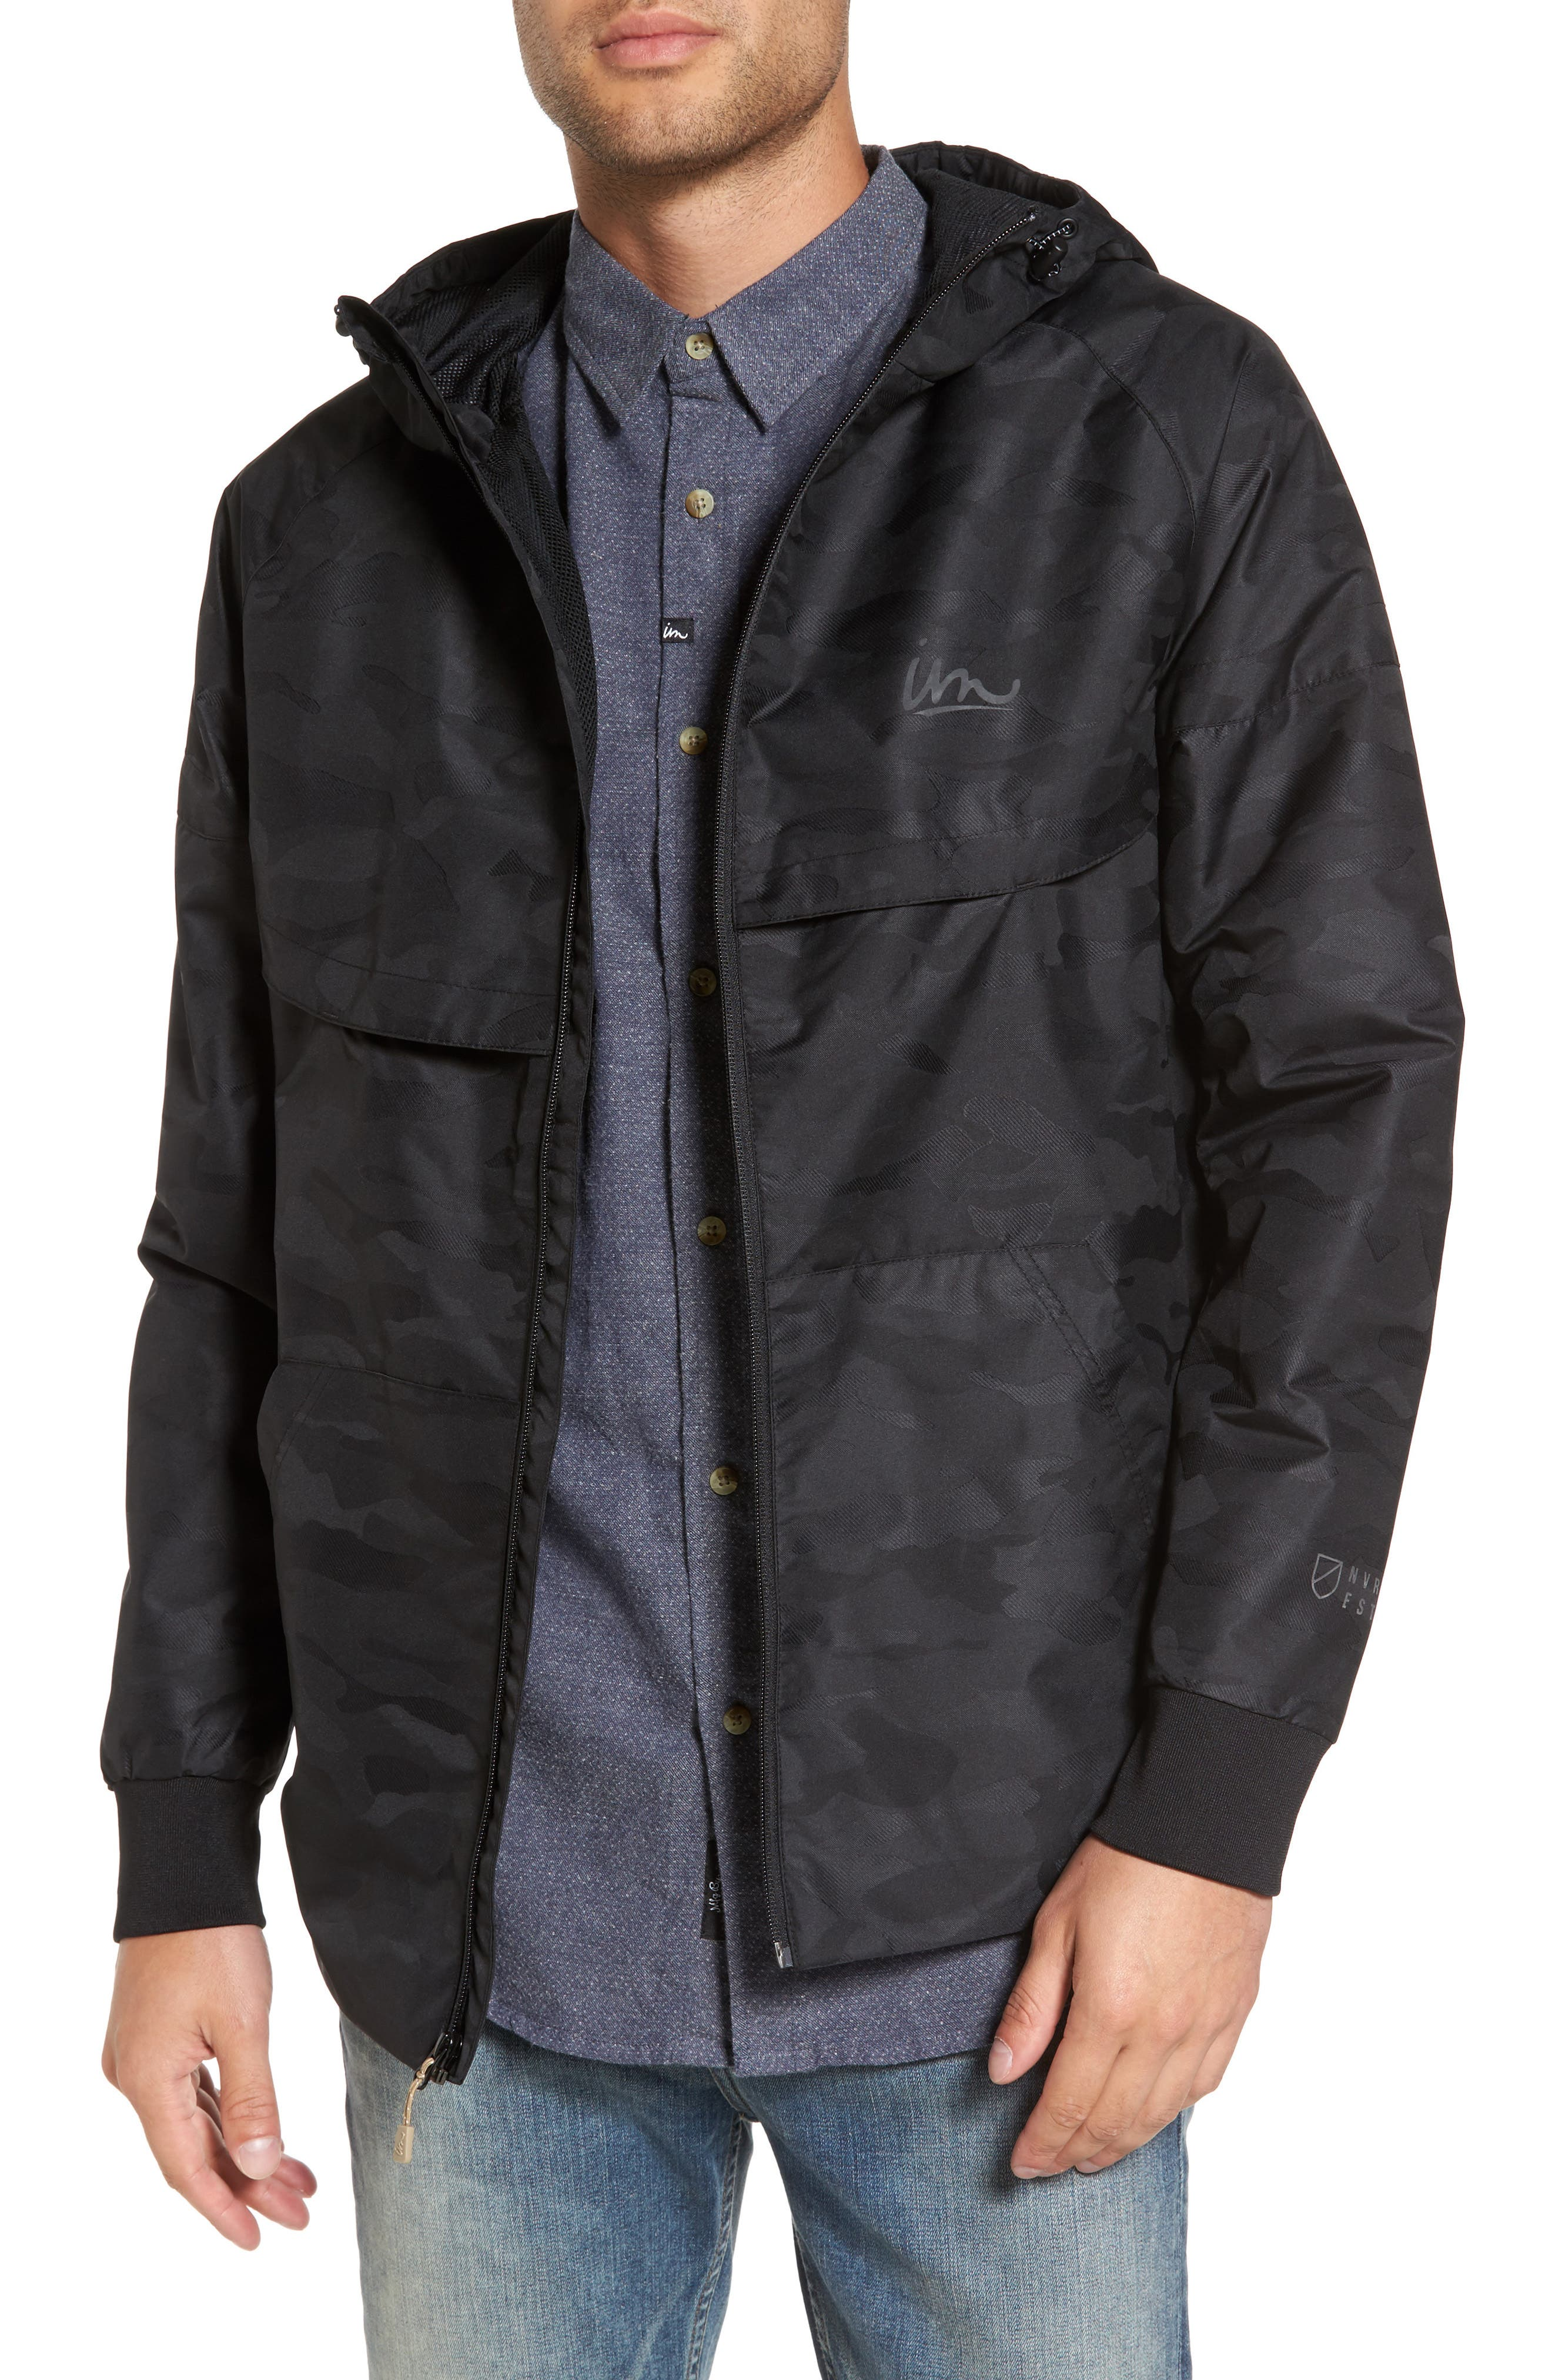 Larter Breaker Jacket,                             Main thumbnail 1, color,                             Black Camo